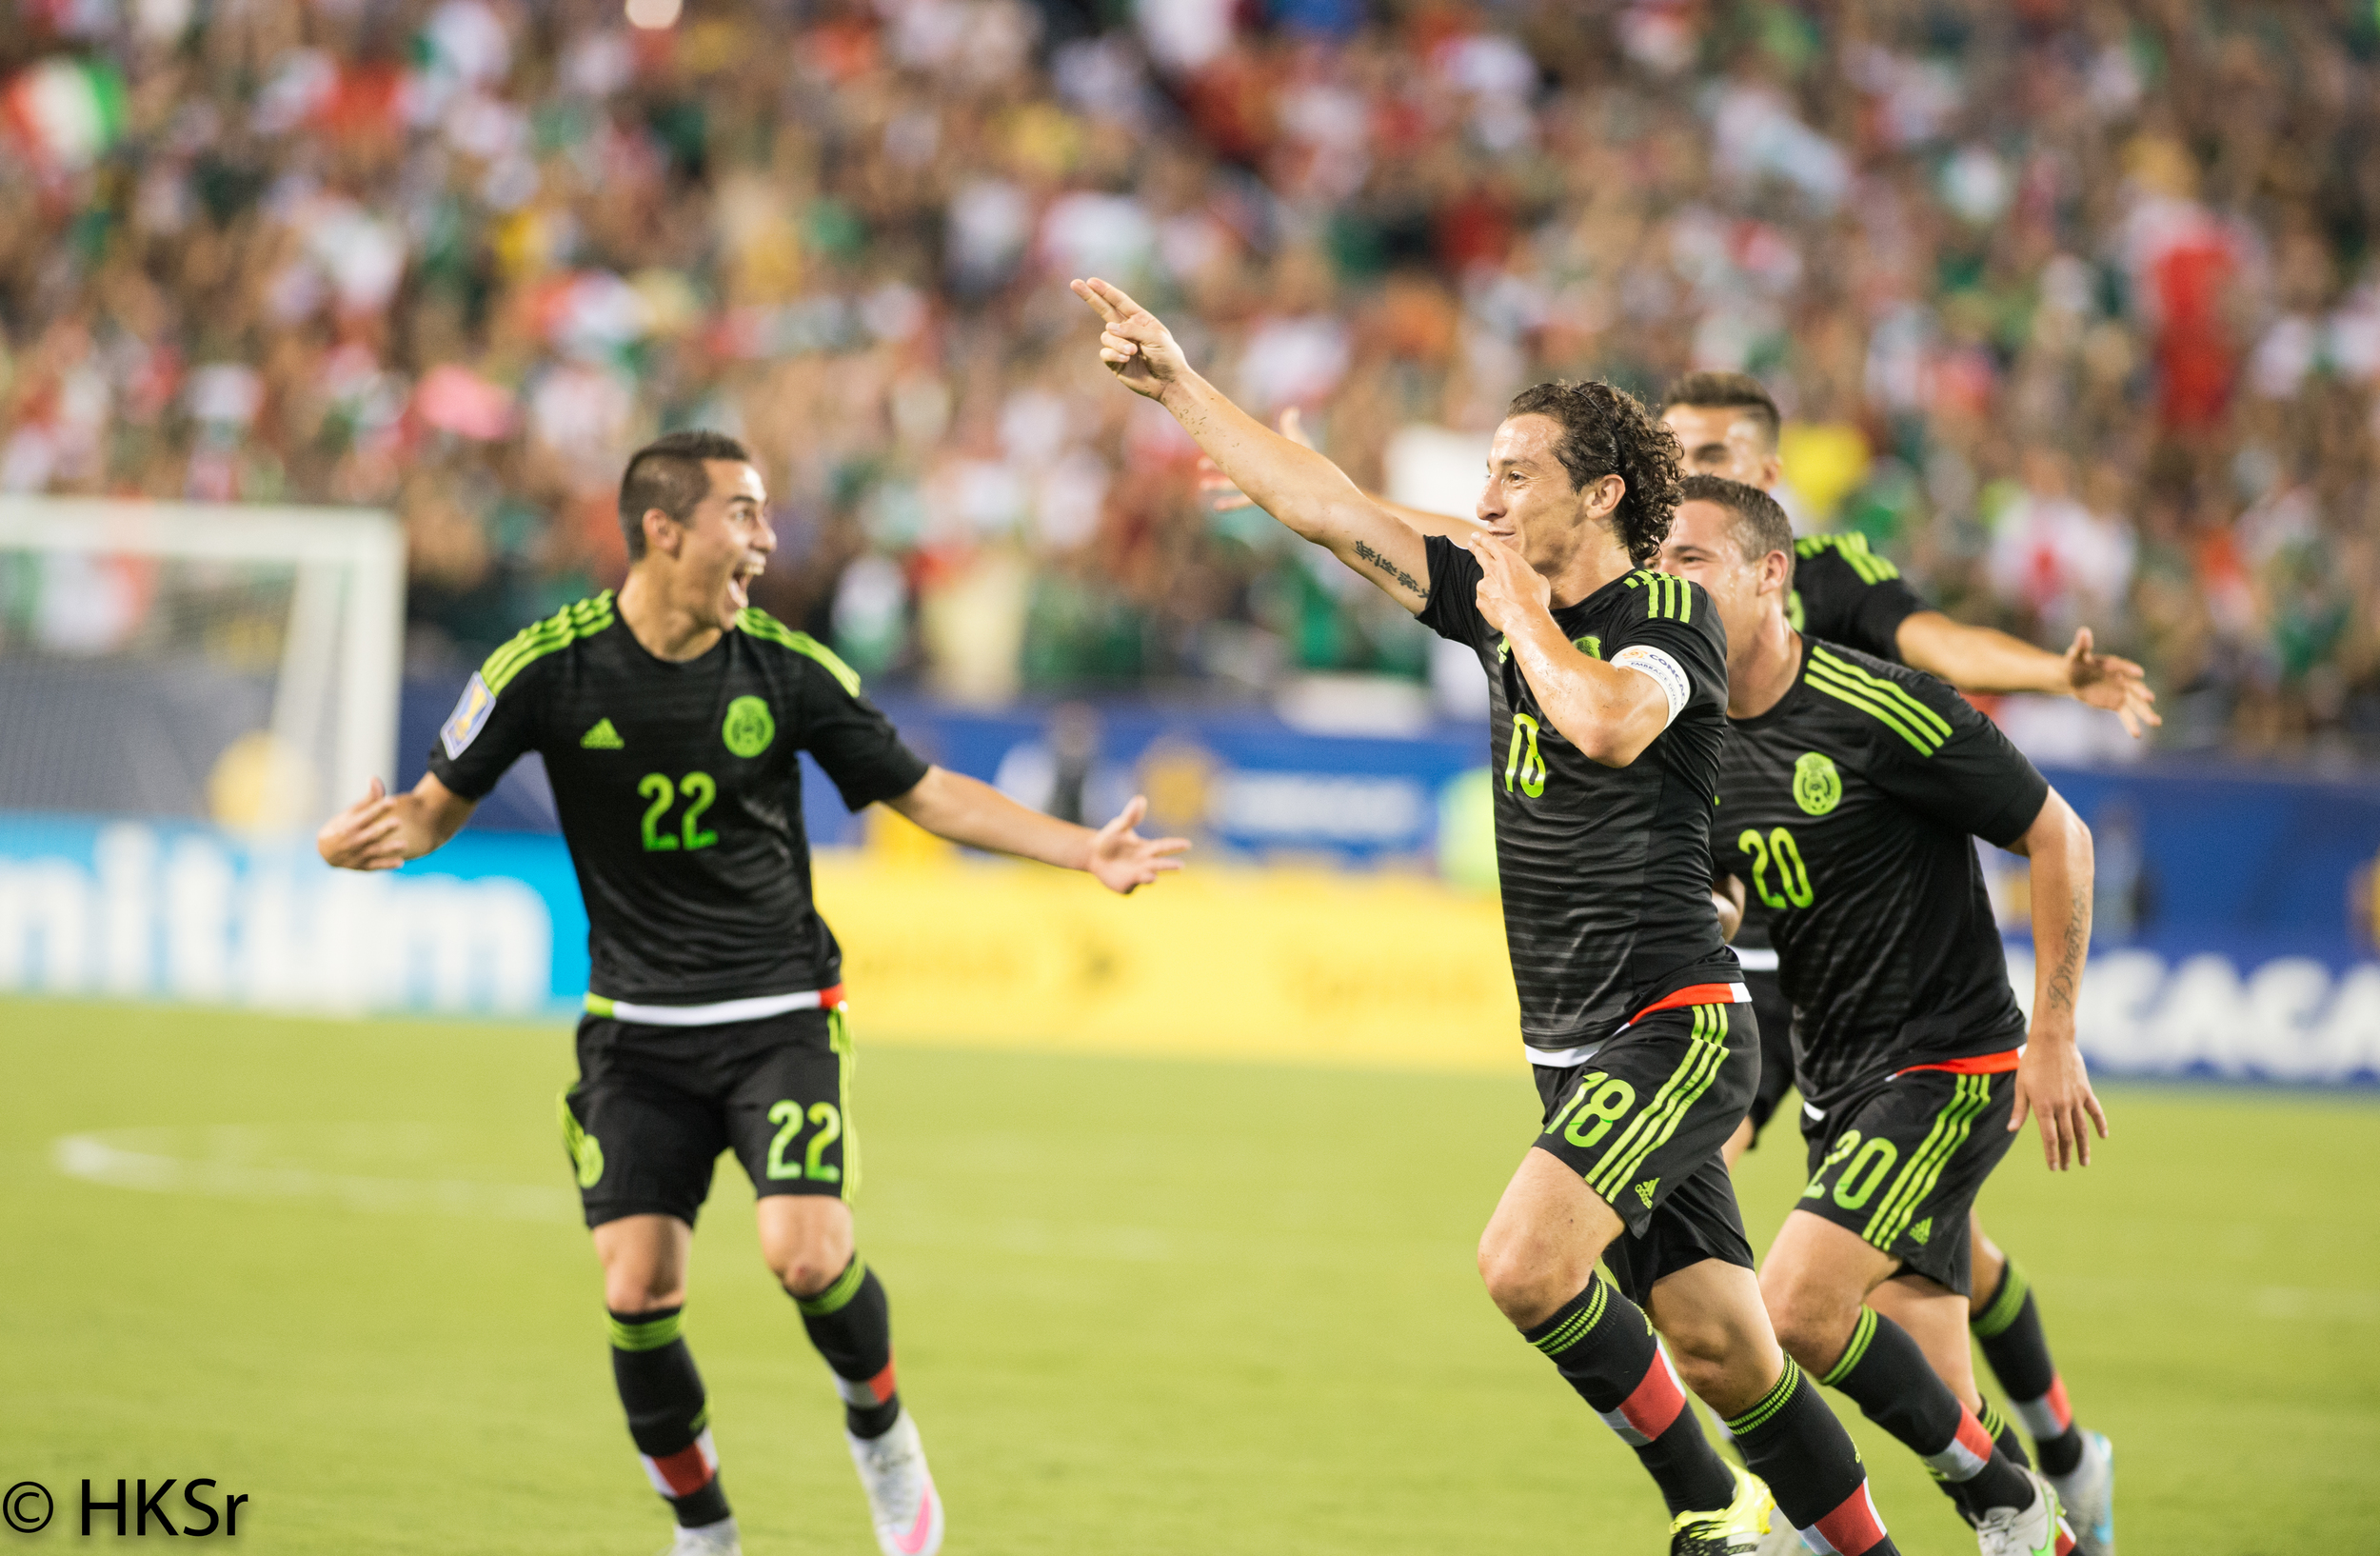 The first goal of the match by Mexico #18 Andres Guardado